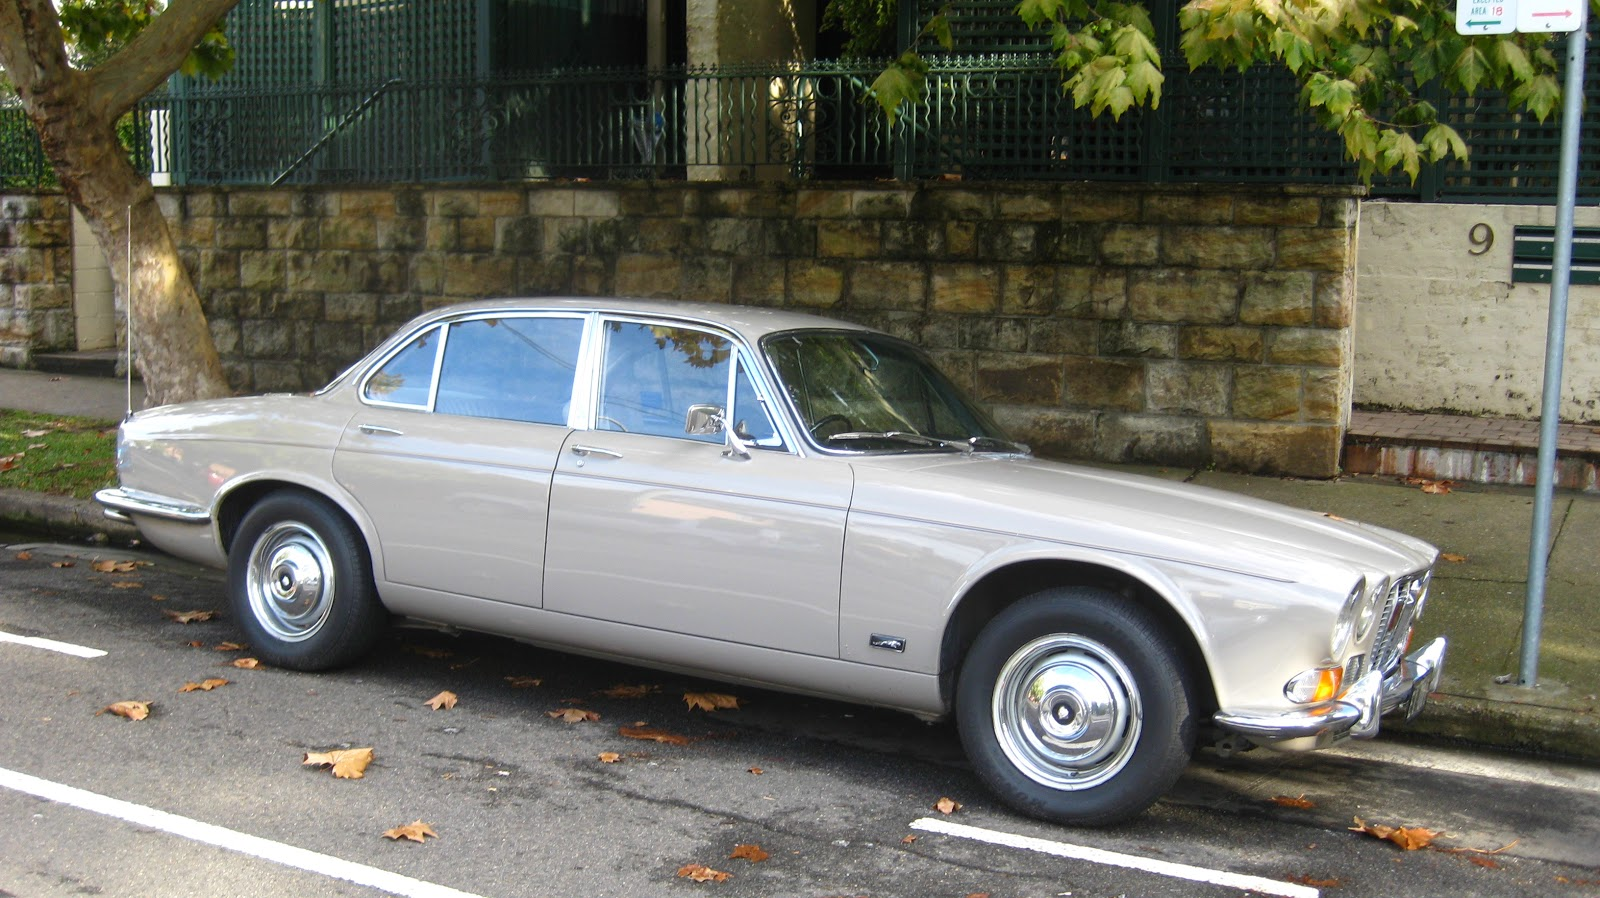 Aussie Old Parked Cars  1971 Jaguar XJ6 Series 1